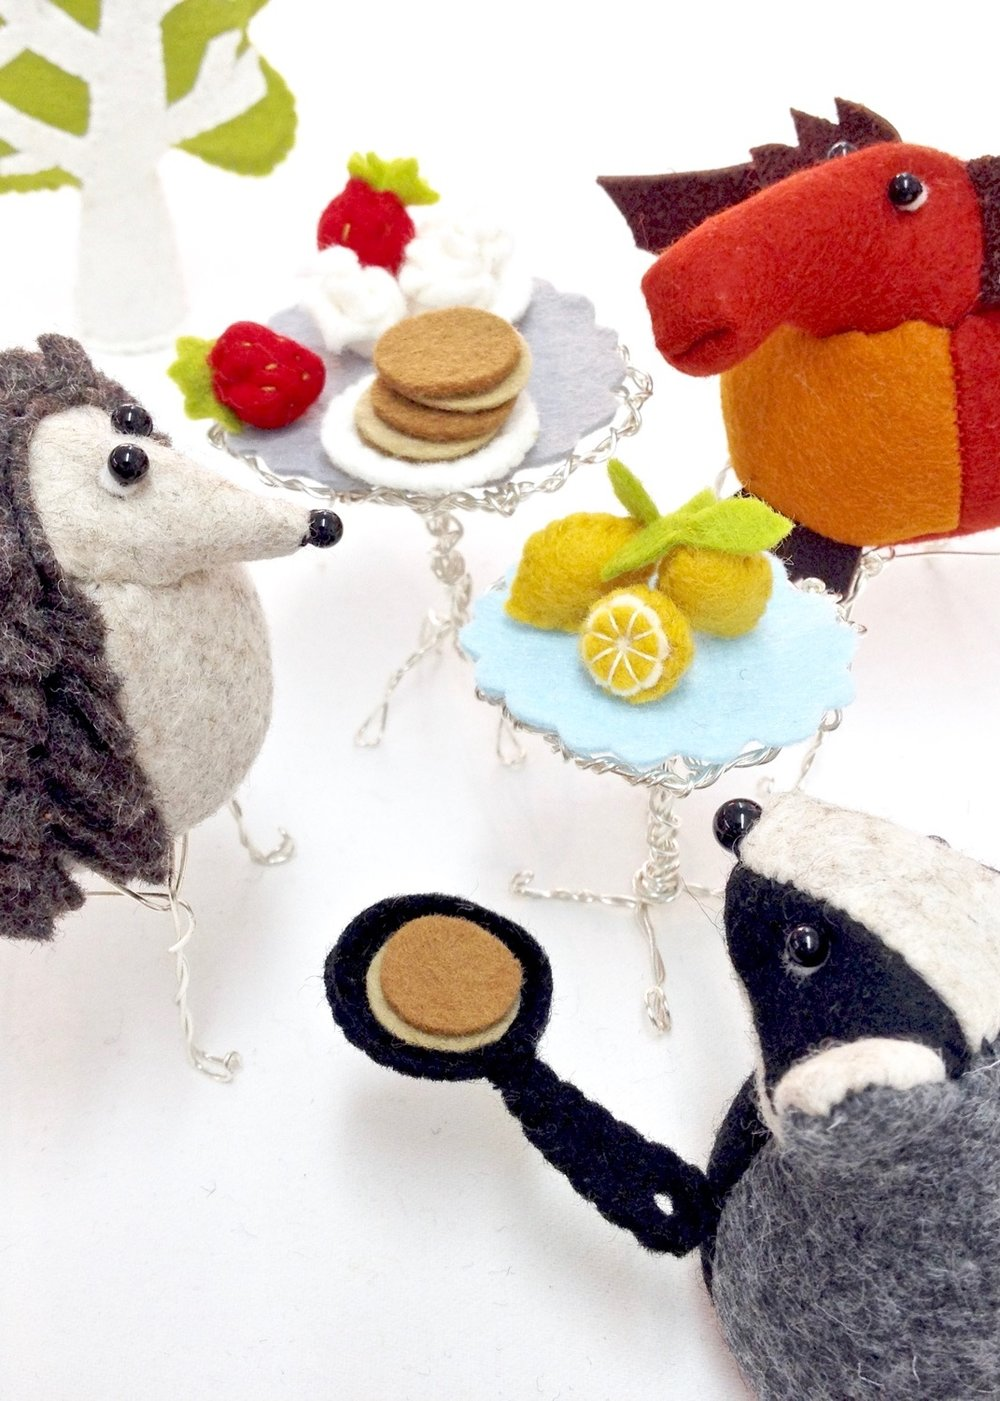 Bilberry Woods characters celebrating pancake day handmade by Laura Mirjami